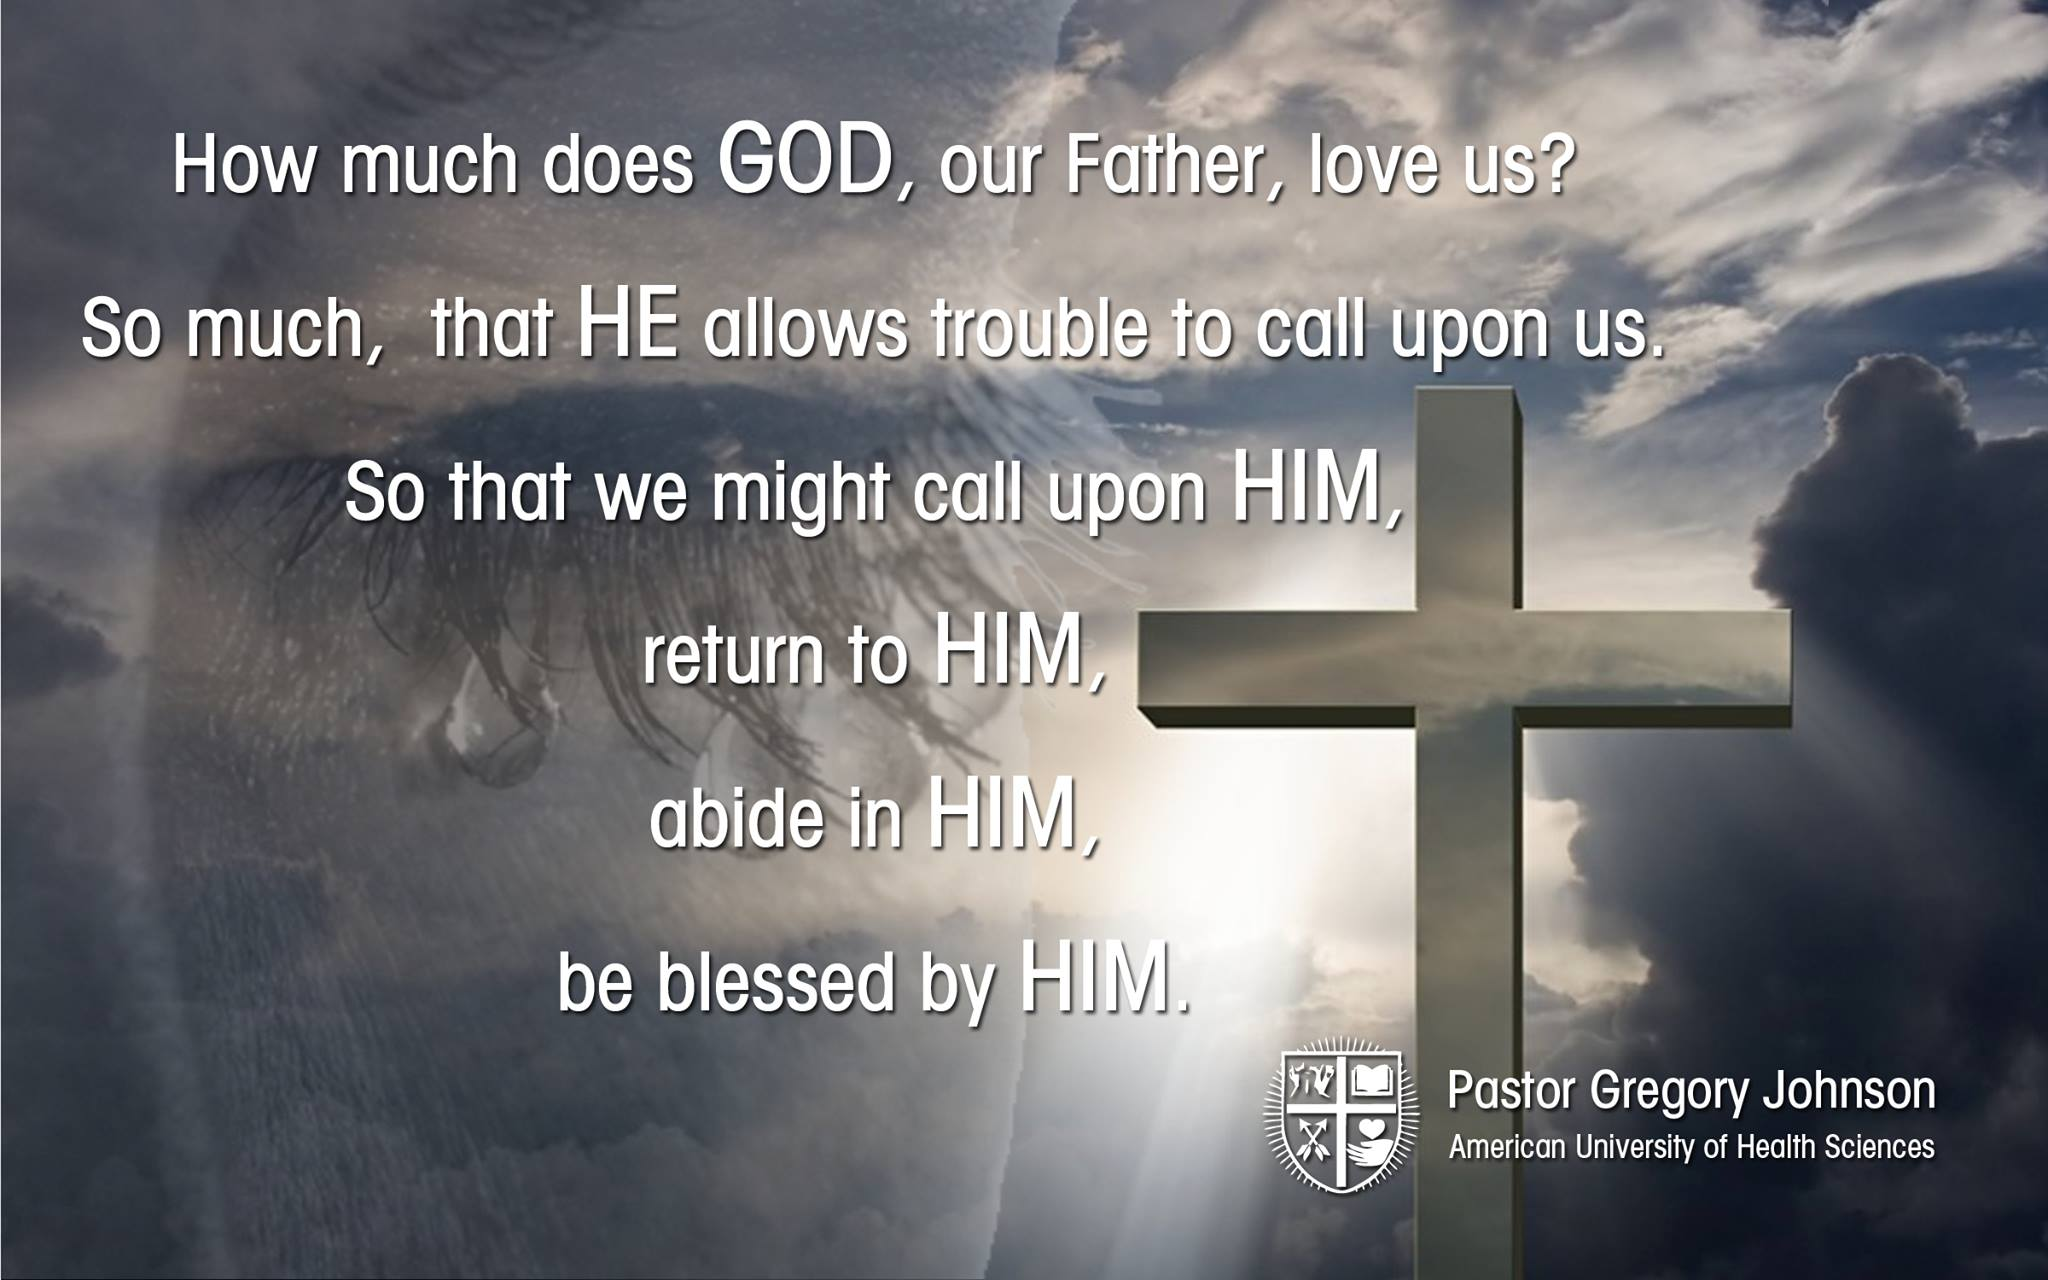 How much does God our father…